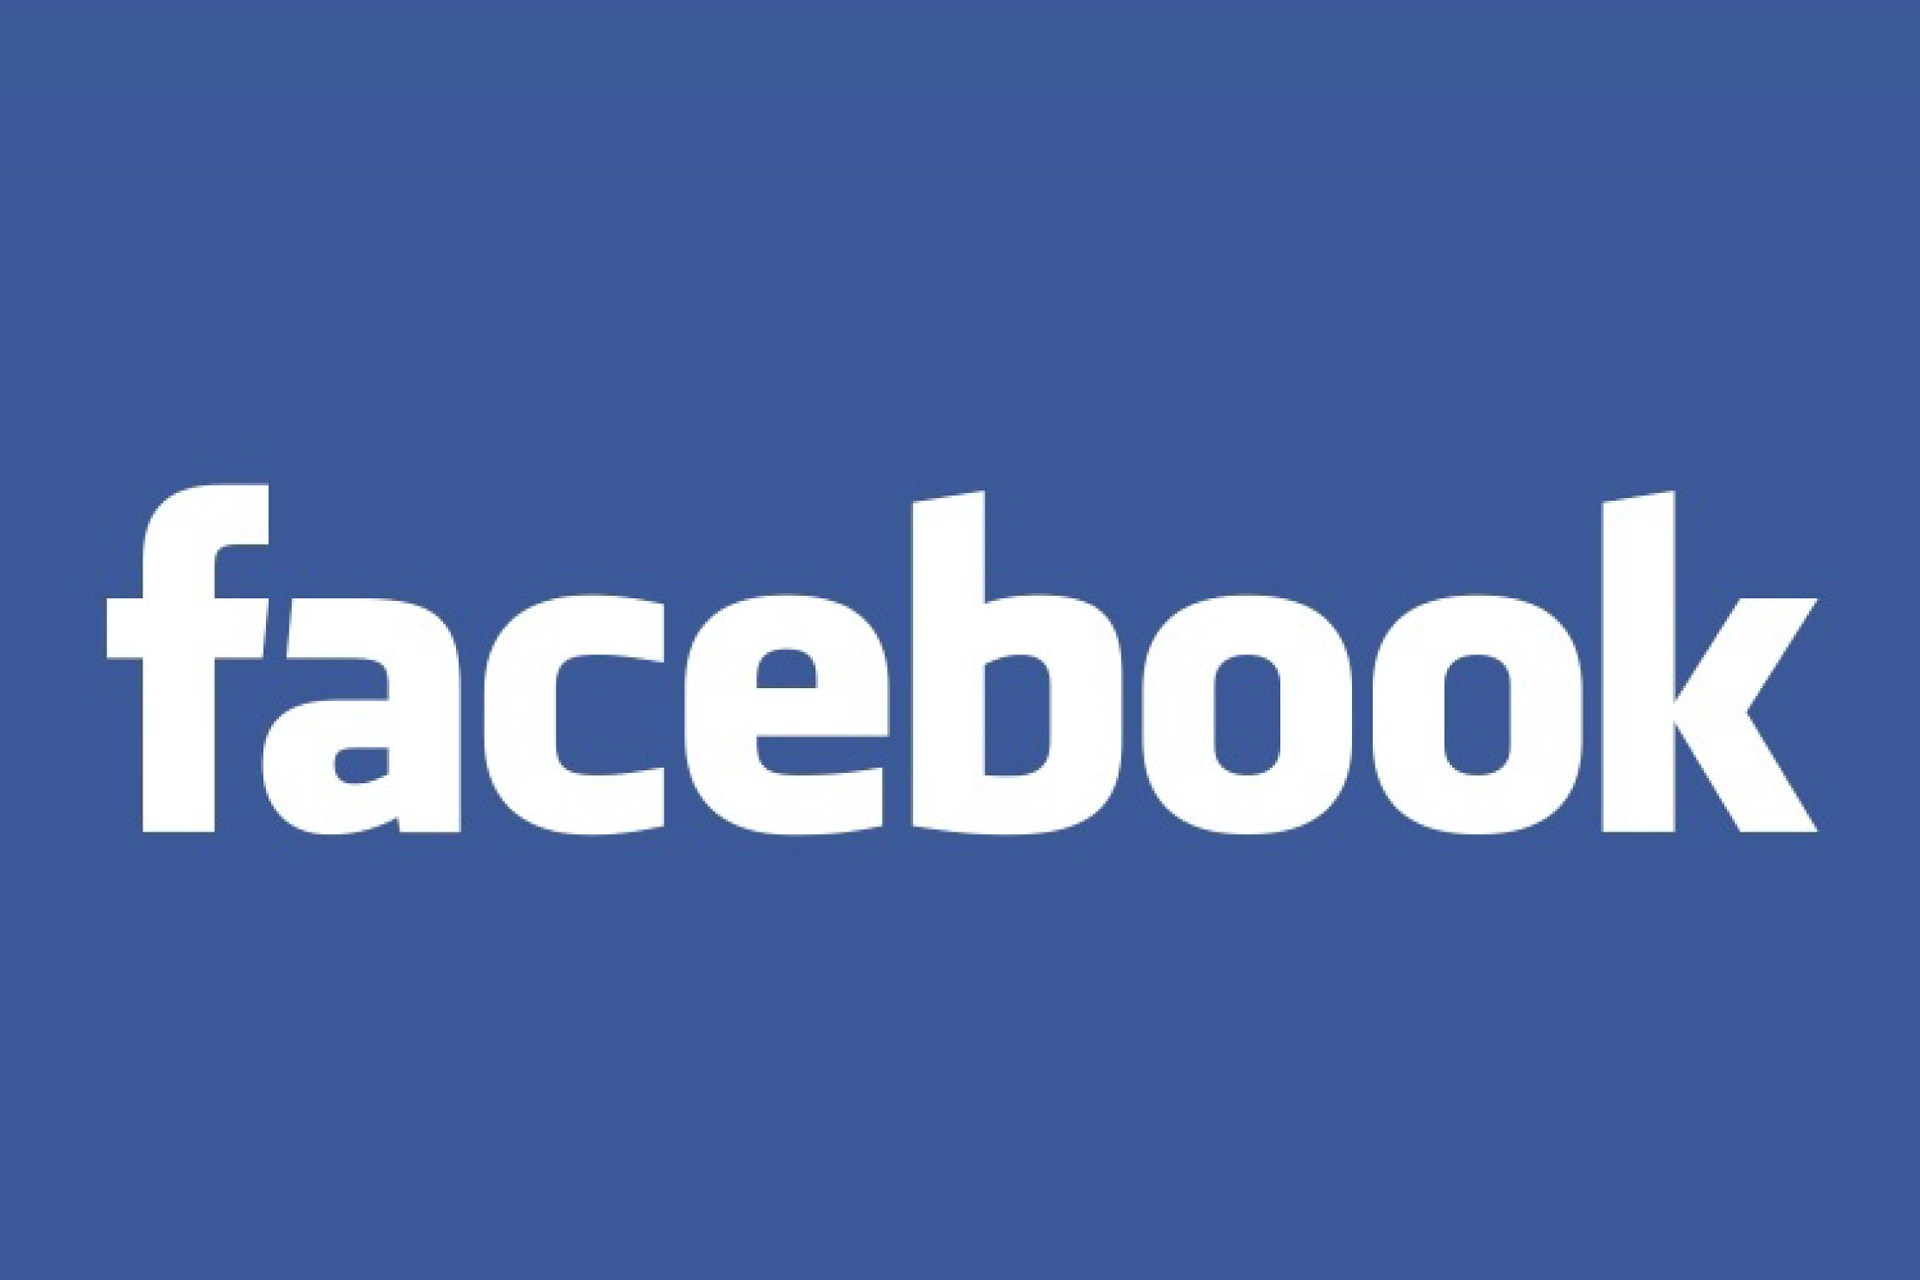 post your message on 500 fb pages